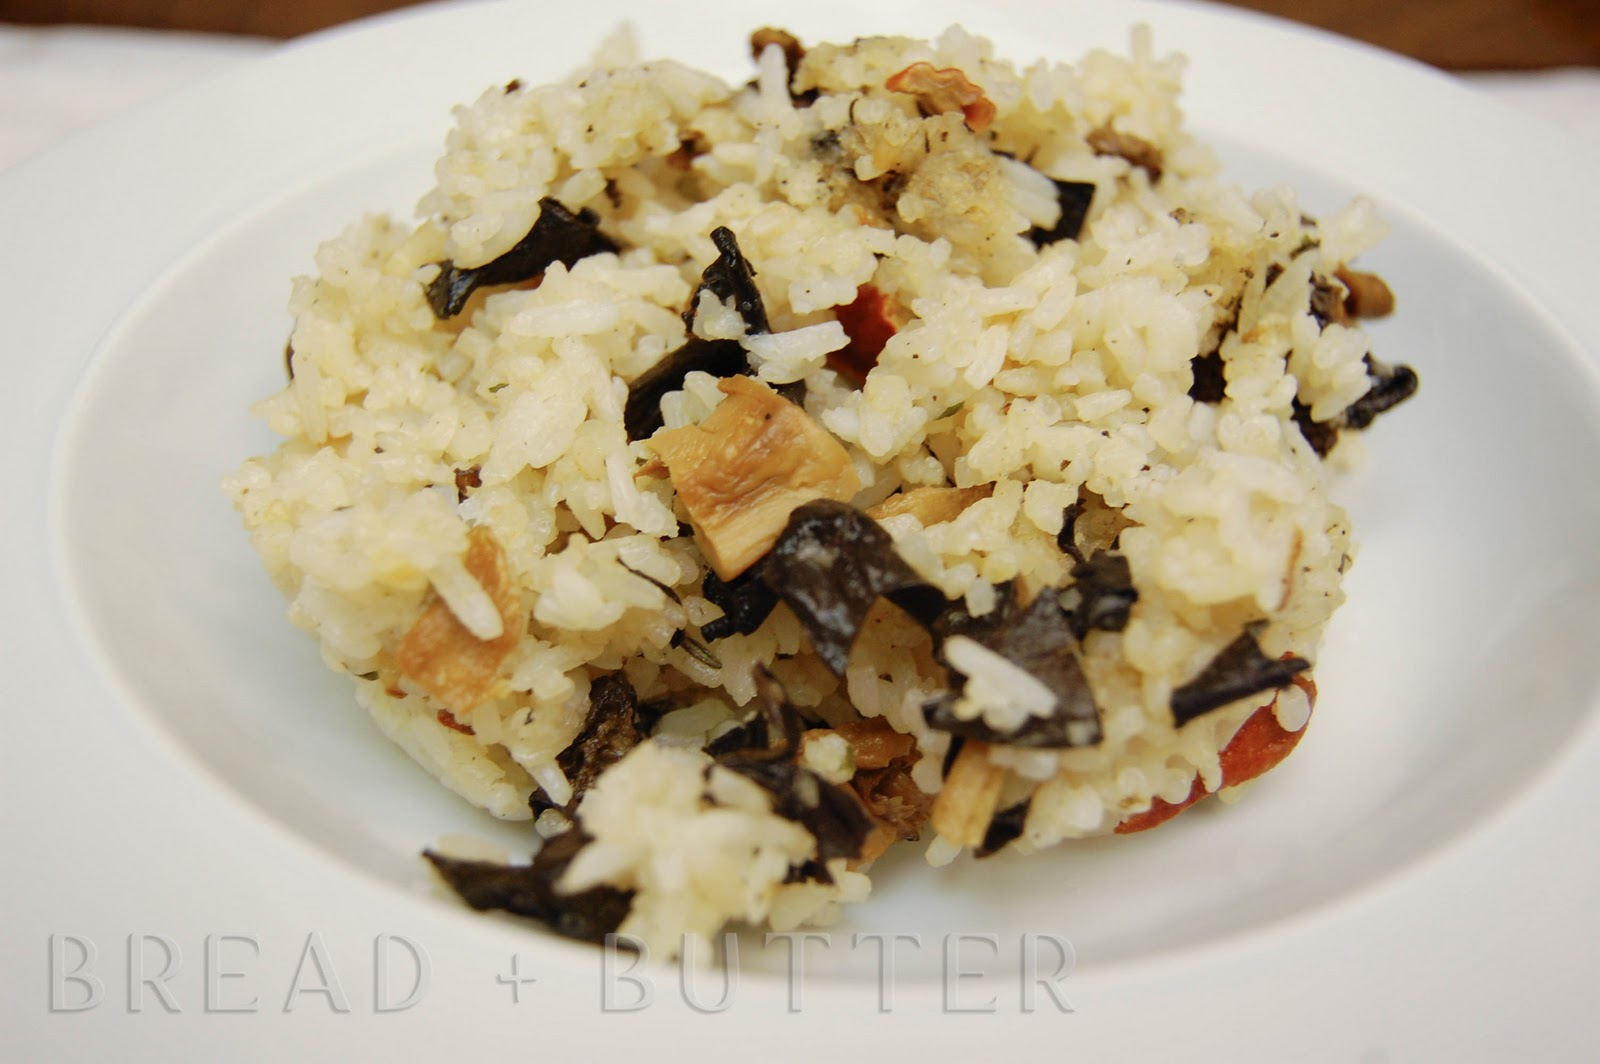 Bread + Butter: Pinoy Style Wild Mushroom Fried Rice